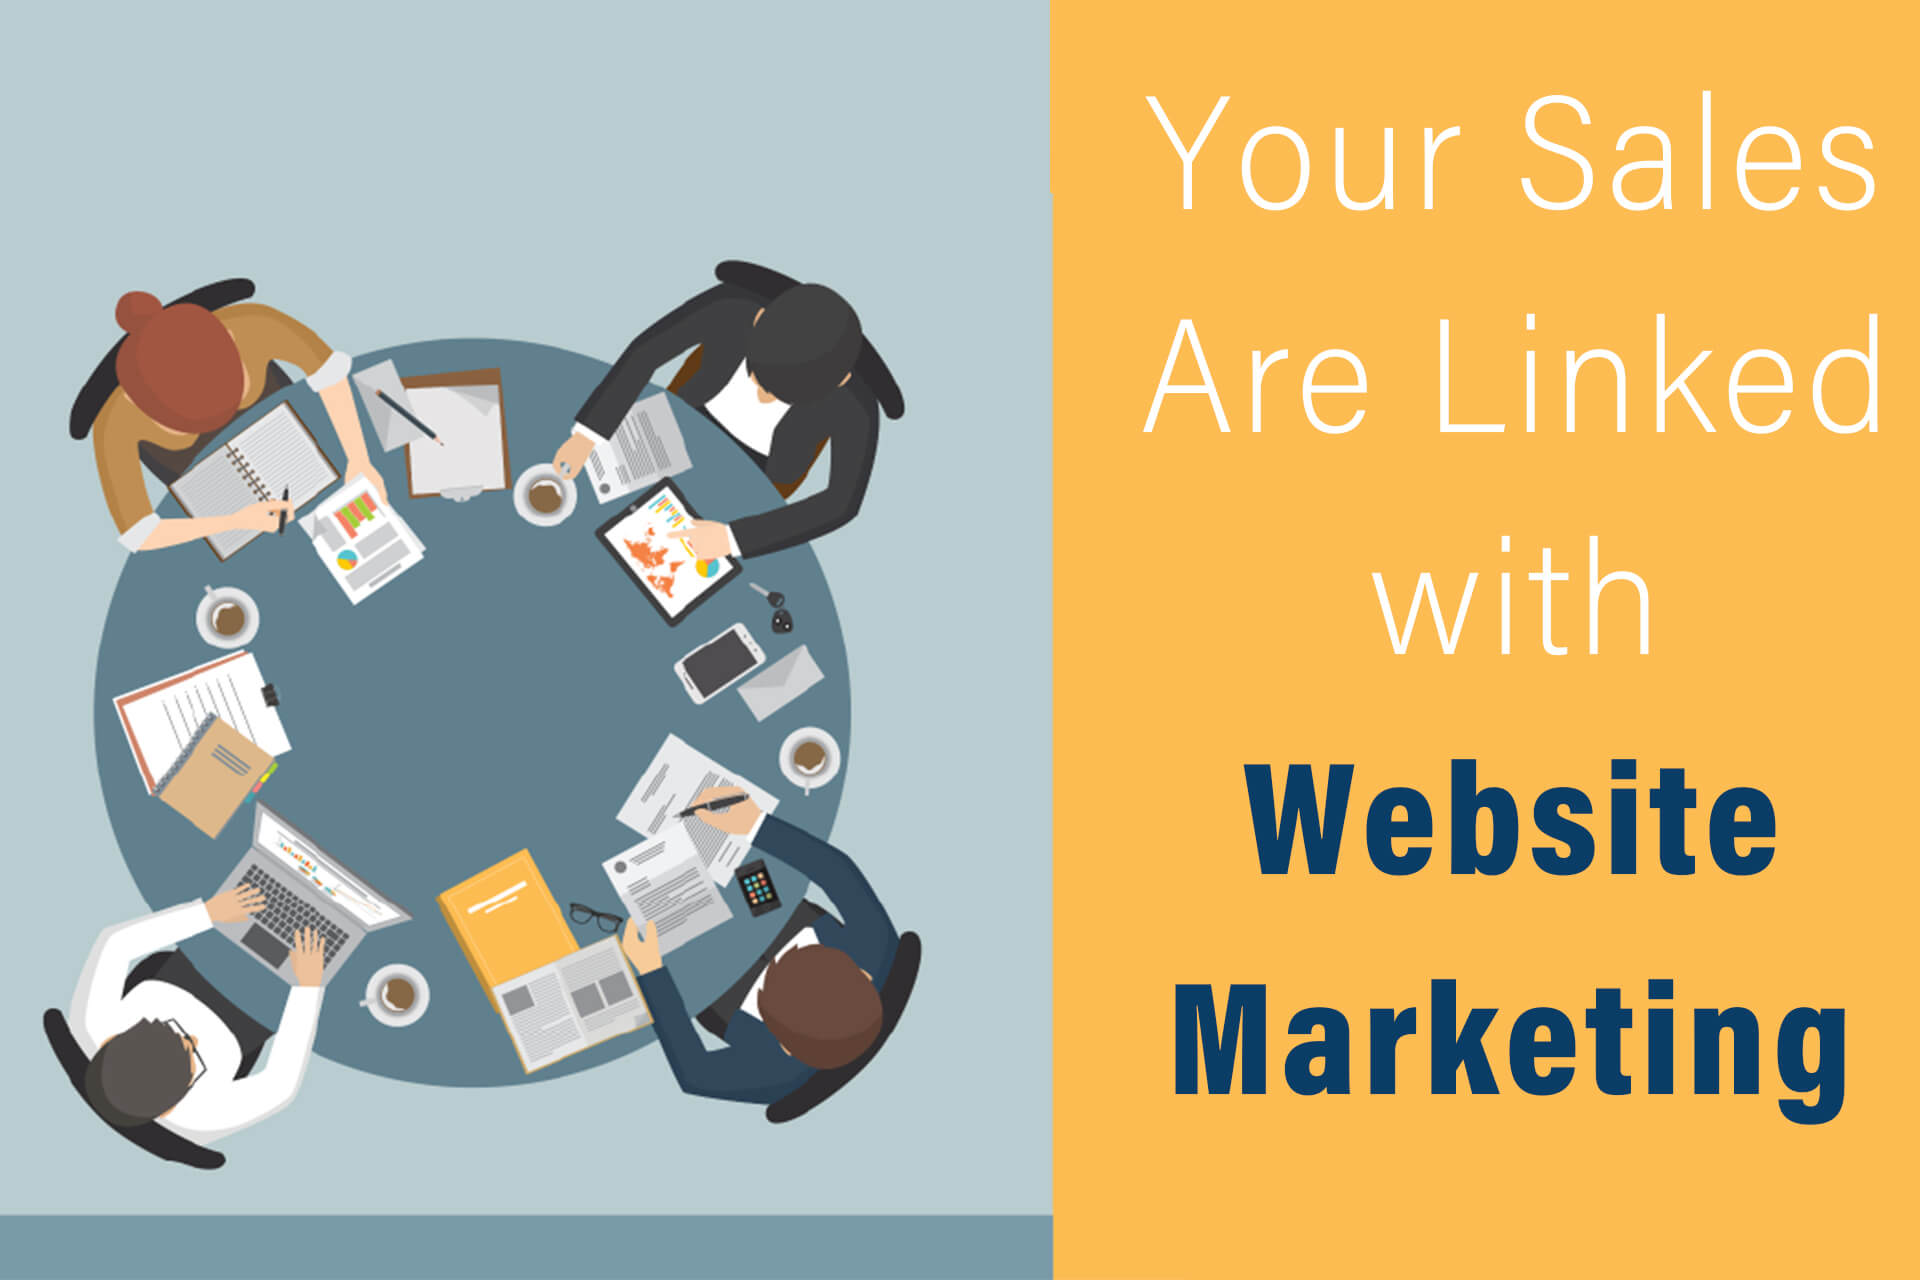 Your Sales Are Linked With Website Marketing